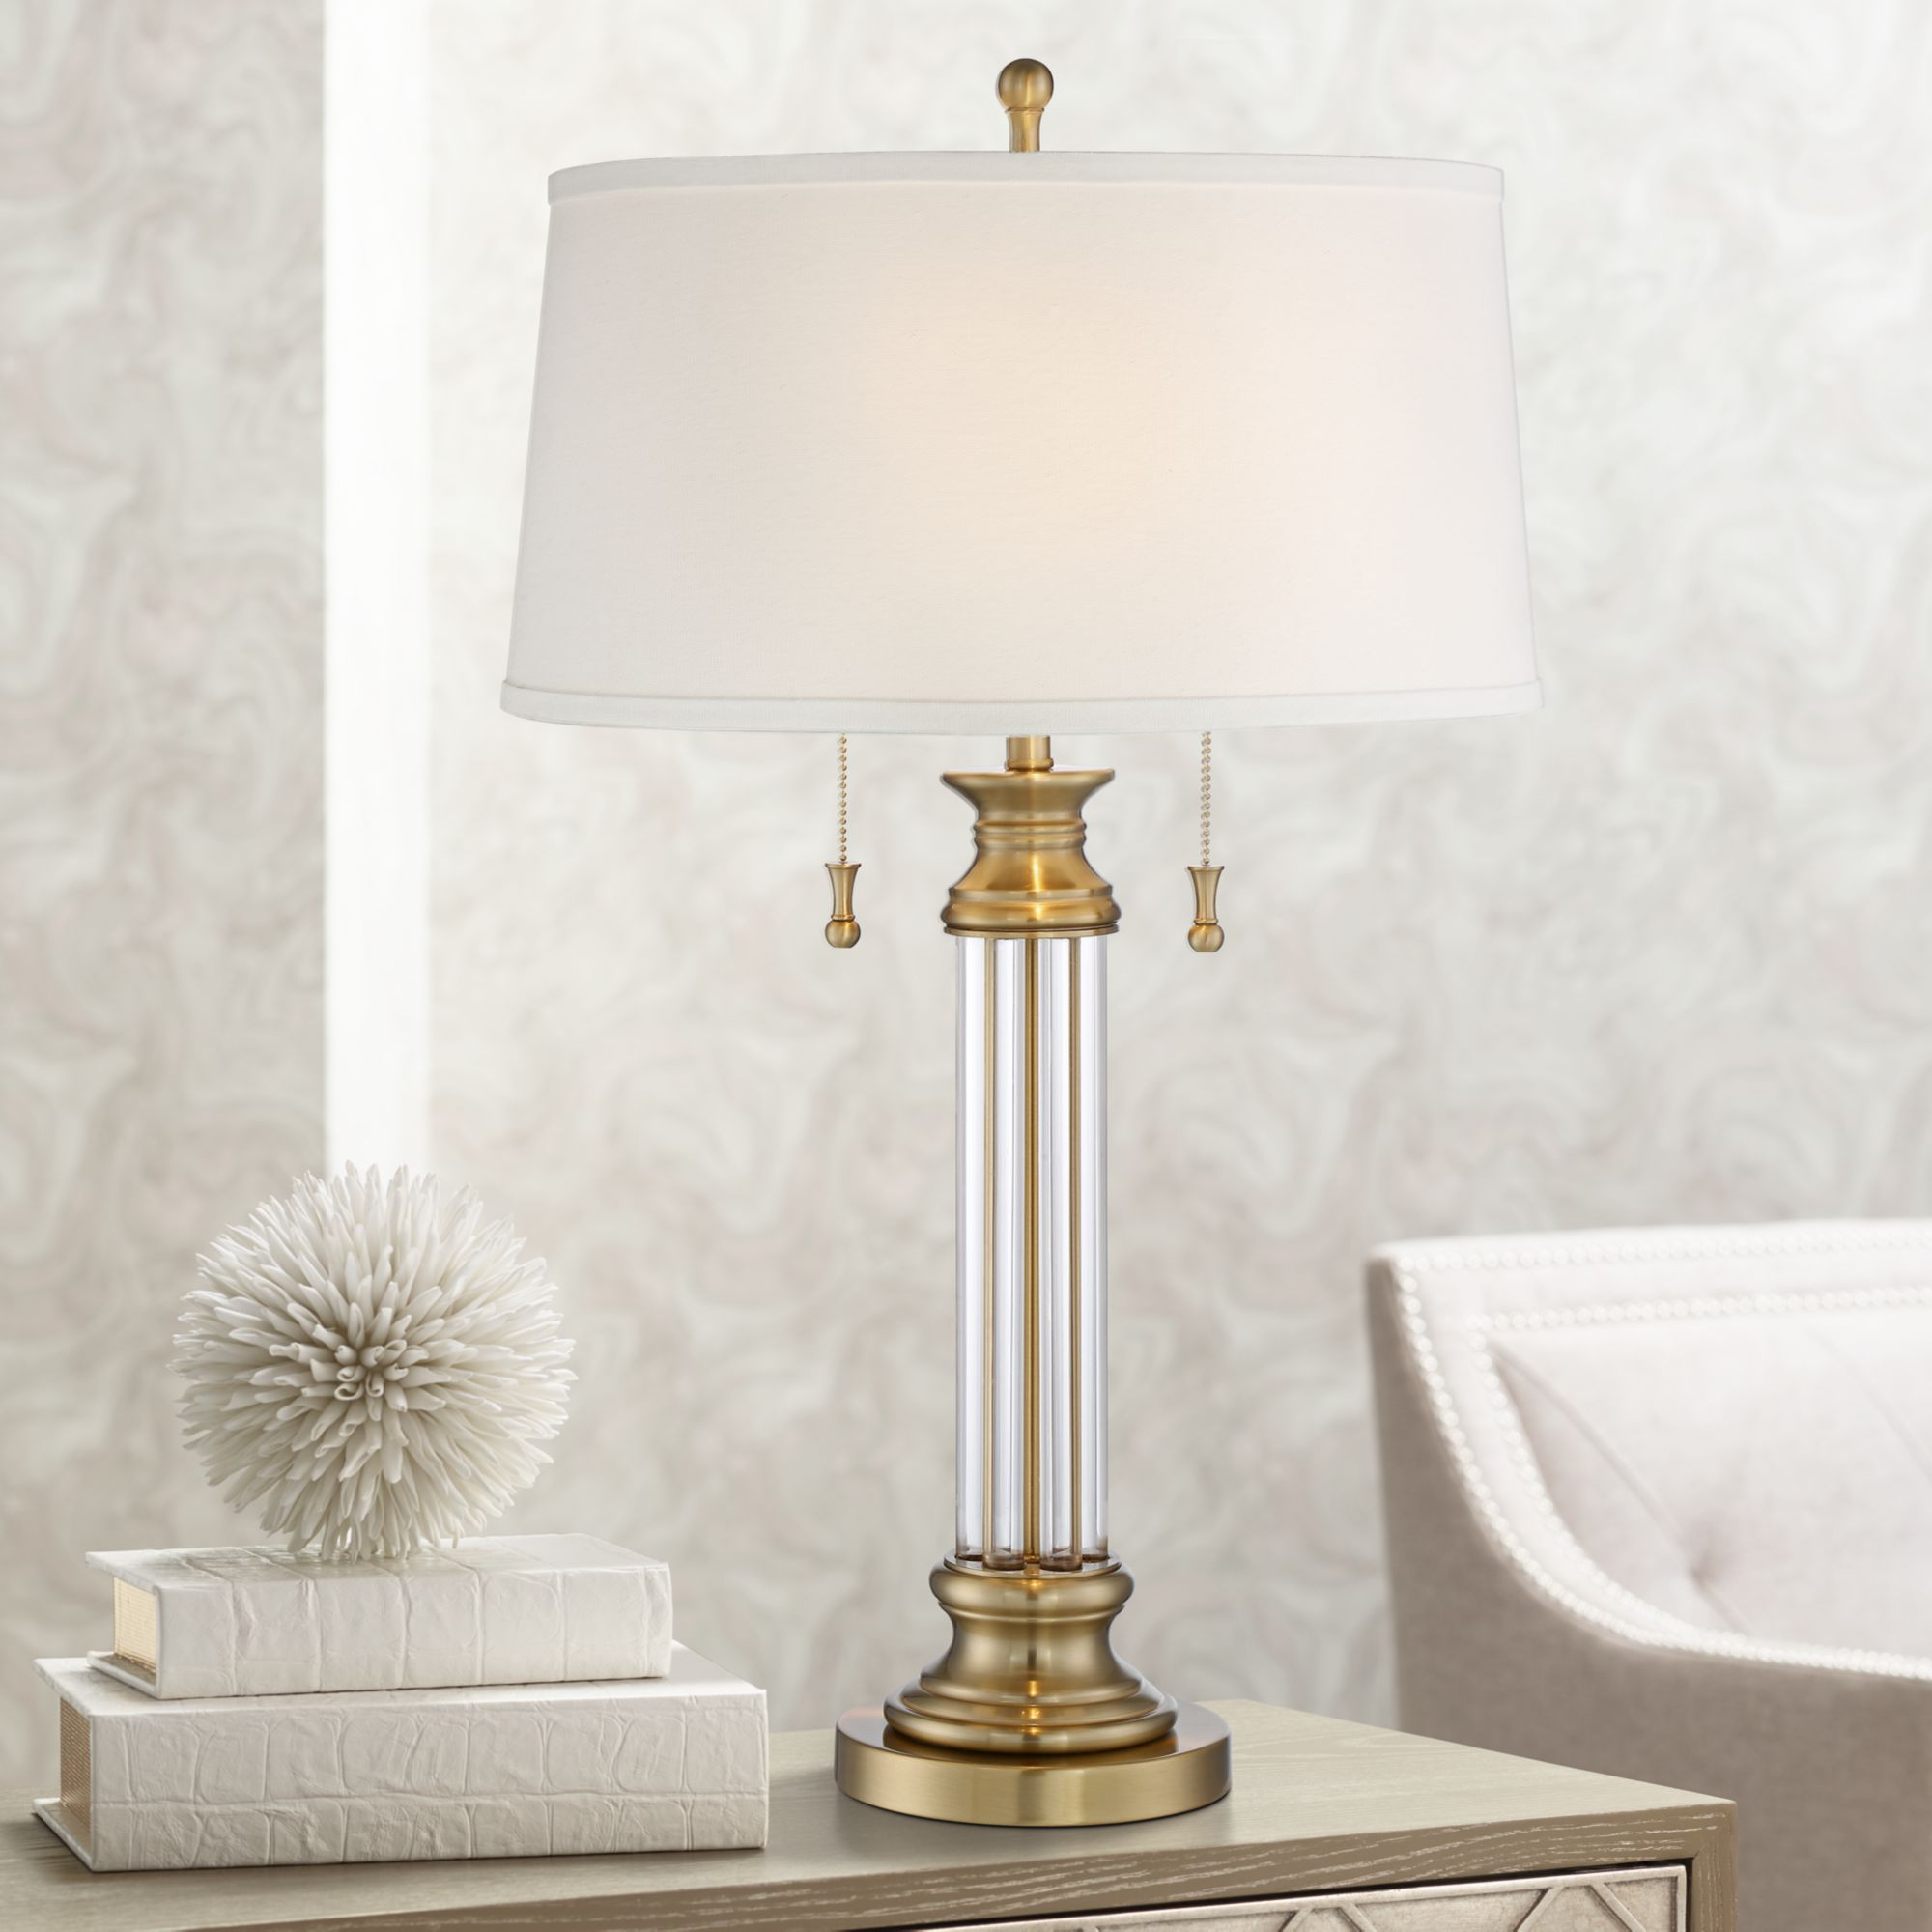 Vienna Full Spectrum Traditional Table Lamp Crystal Brass Column Off White  Tapered Drum Shade for Living Room Family Bedroom - Walmart.com